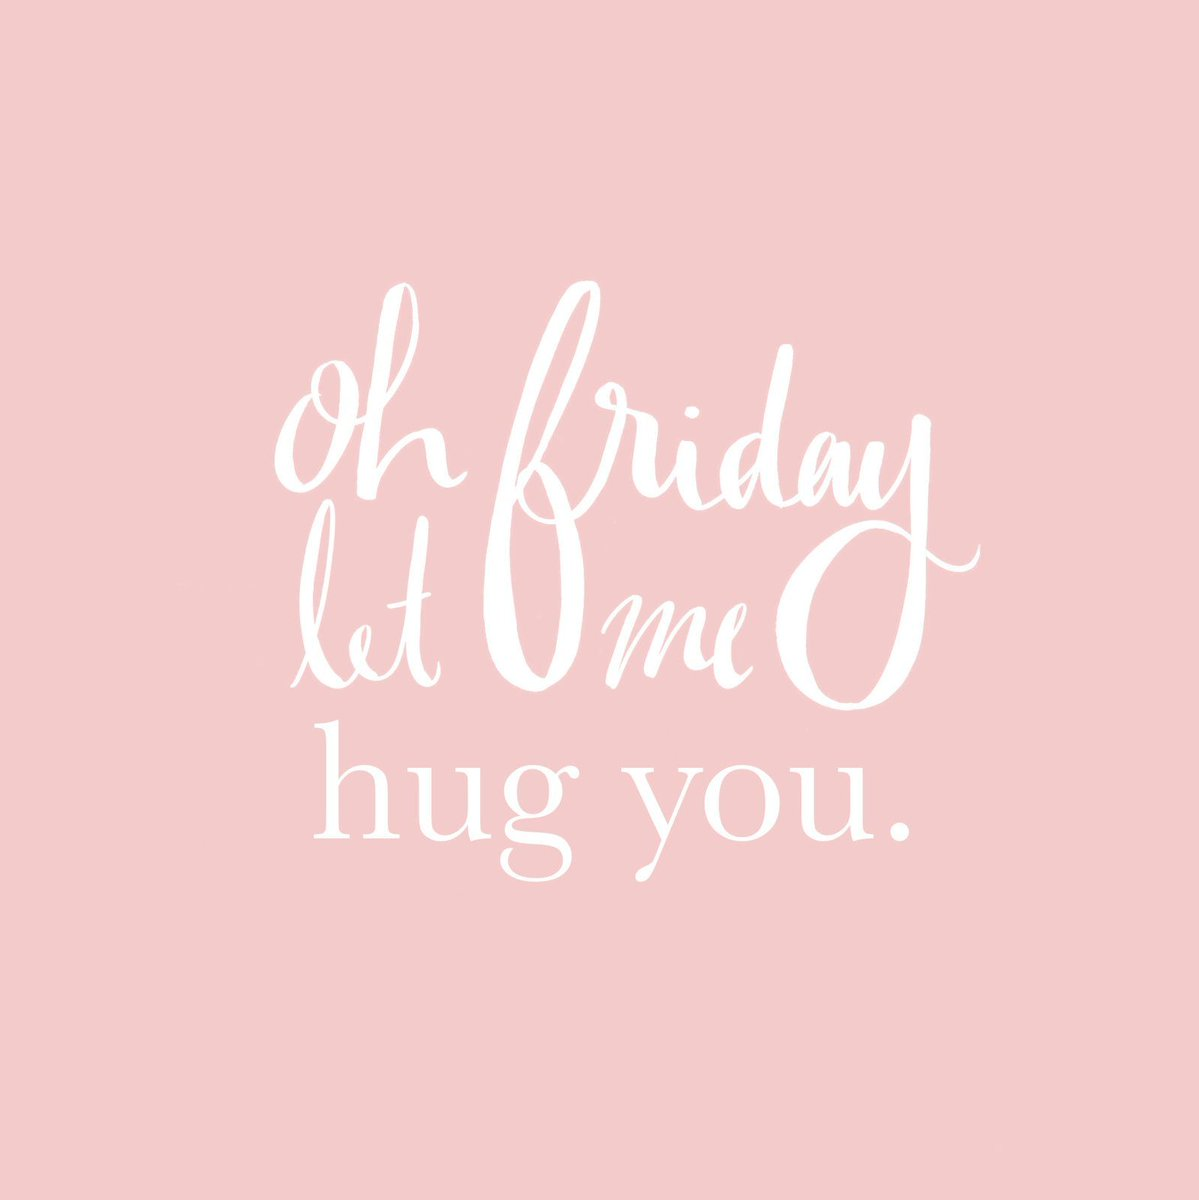 Give someone a hug today, you never know how it can change their day!   #jufitnessloft #motivation #inspire #instafit #fitness #fit #strong #goodvibes #healthylife #happylife #fitlife #crosstrain #workout #fitnessmotivation #fitfam #sport #love #healthy #gymlife #personaltrainer https://t.co/AMGyRLHbYH